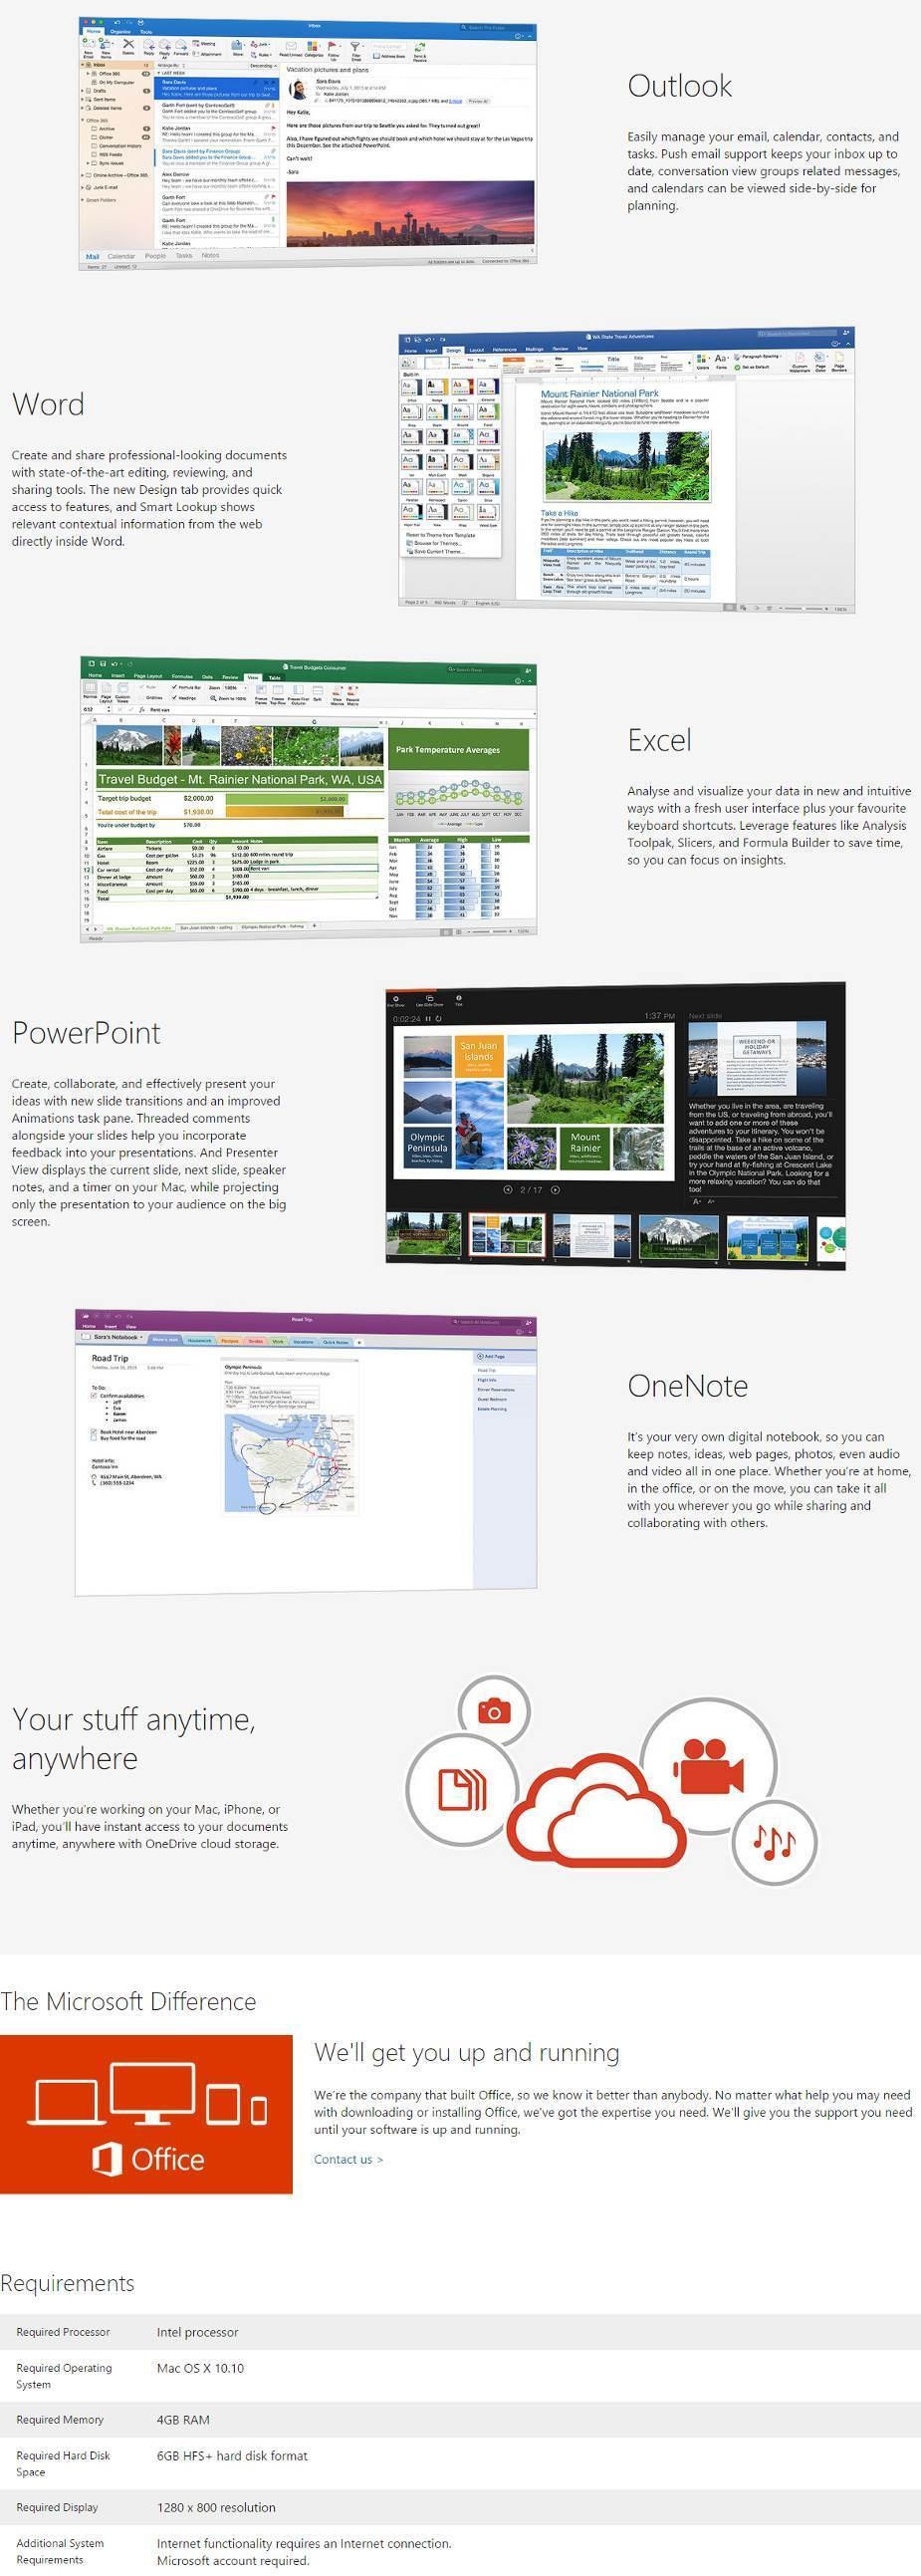 office home and business 2016 for mac requirements